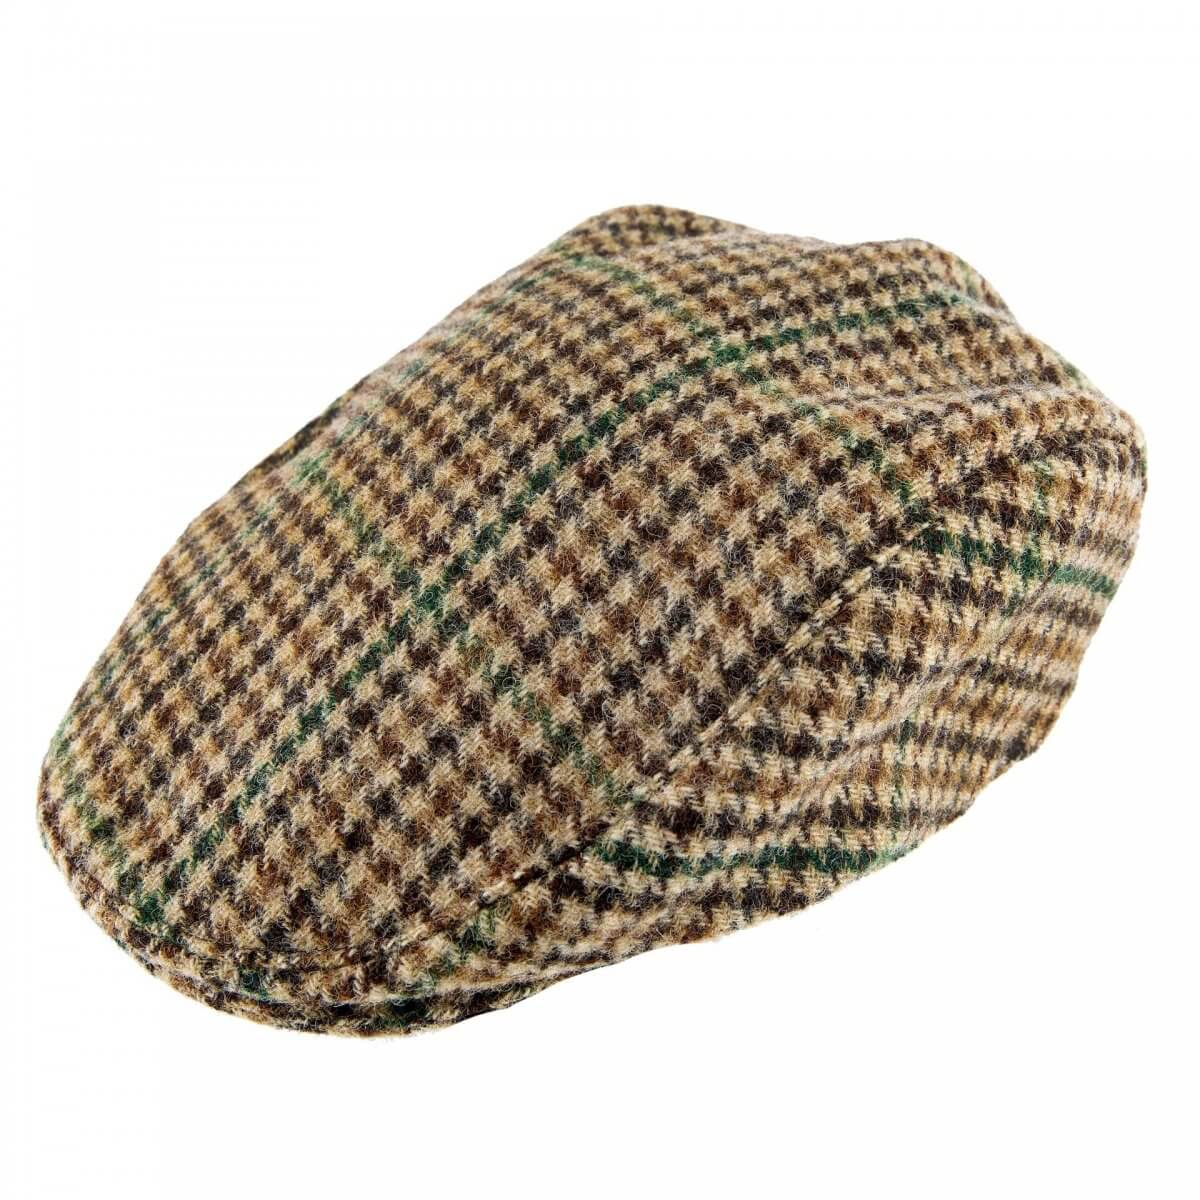 Yorkshire Dog Tooth Flat Cap